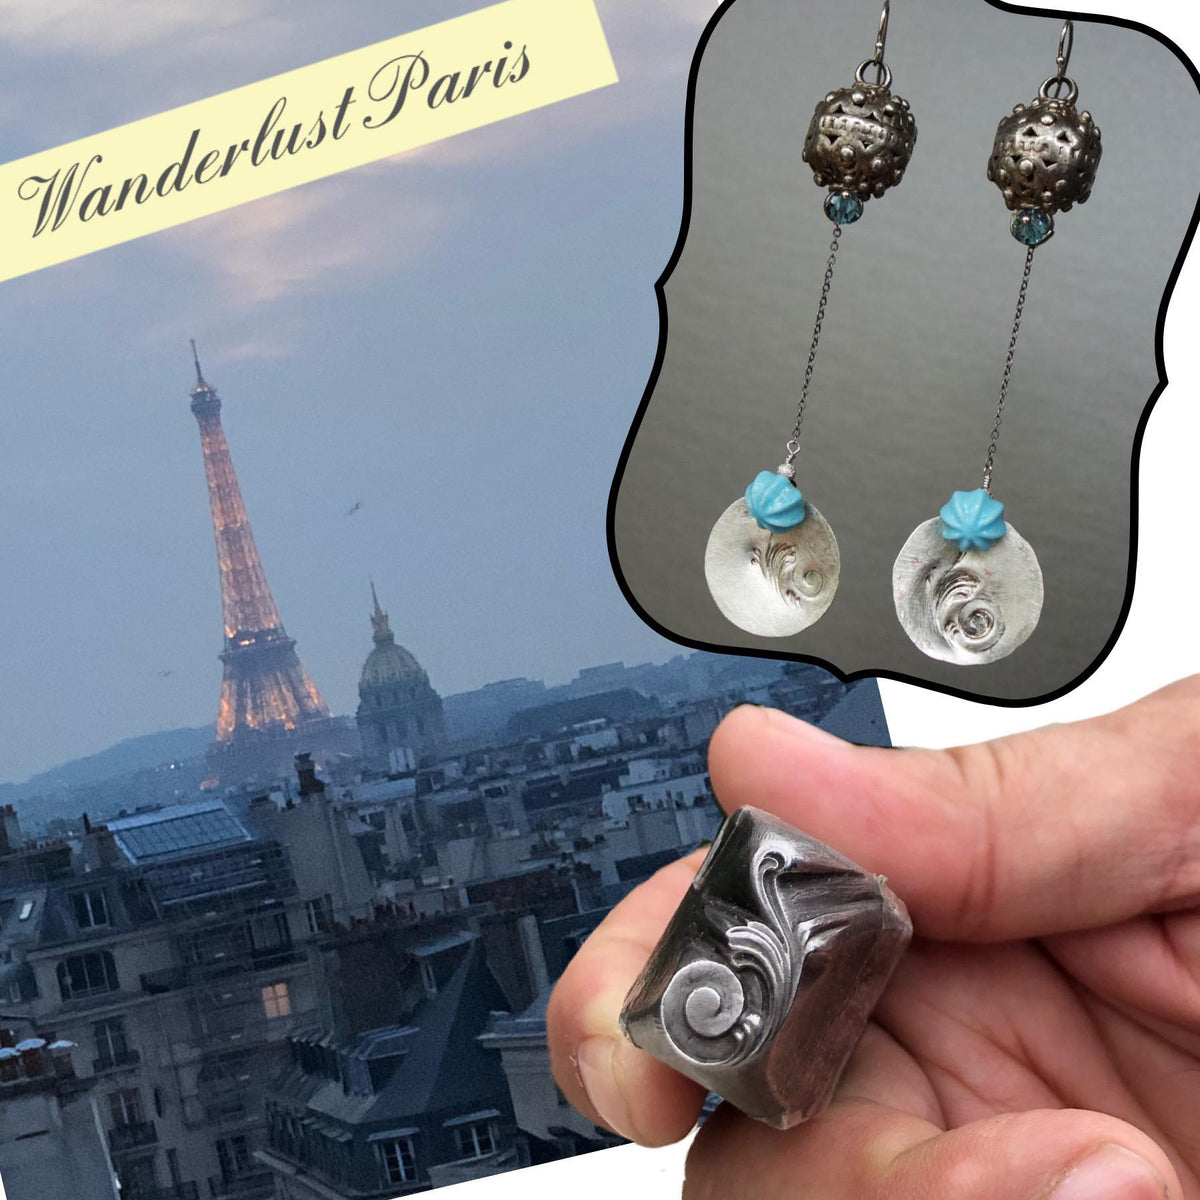 Edith Piaf's Paris Earrings (Wanderlust Paris)